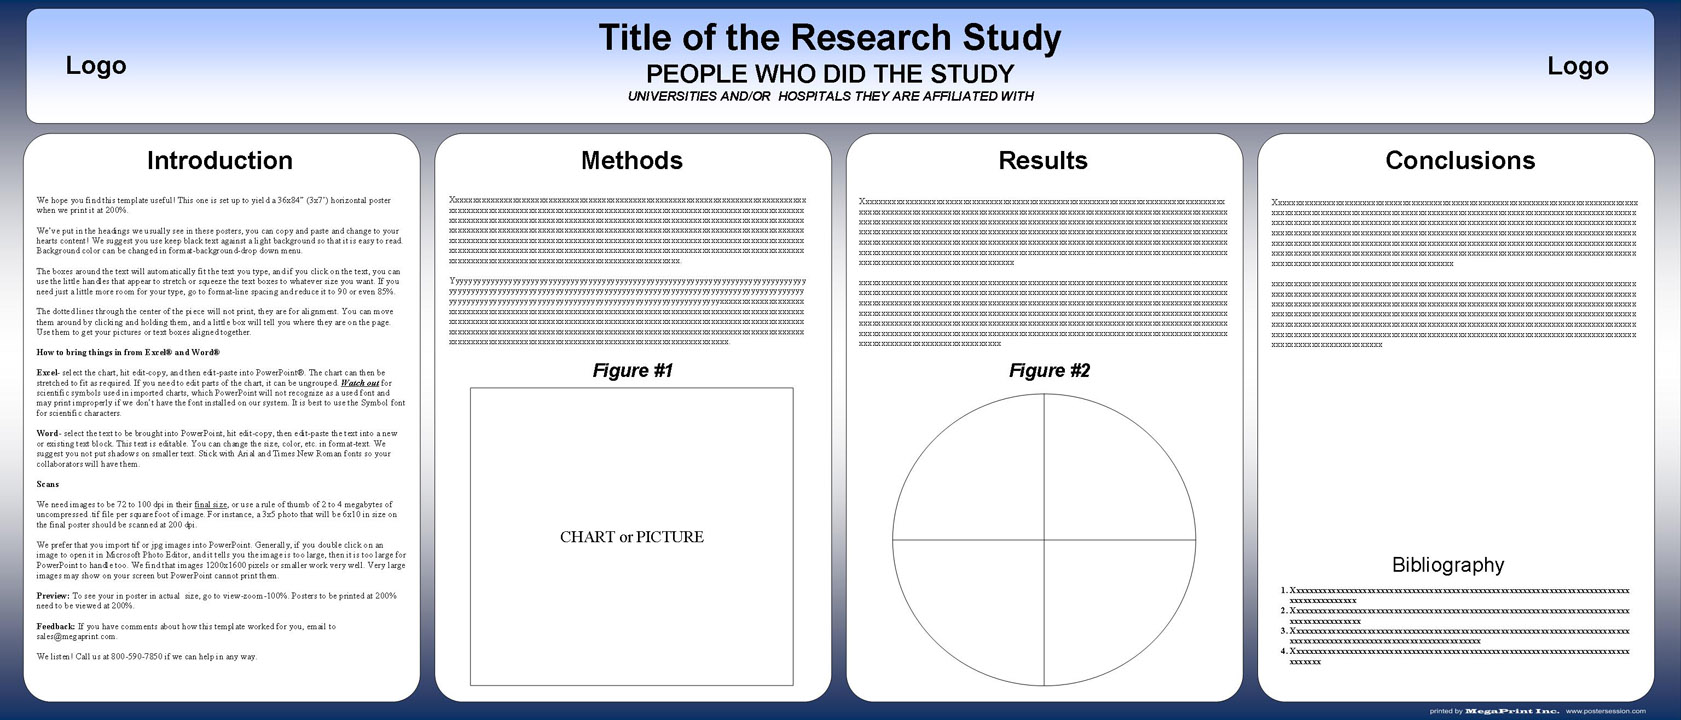 research posters template 3-column 36x48 poster template 4-column 36x54 poster template 15-minute oral presentation template videos research careers careers – academic career path.